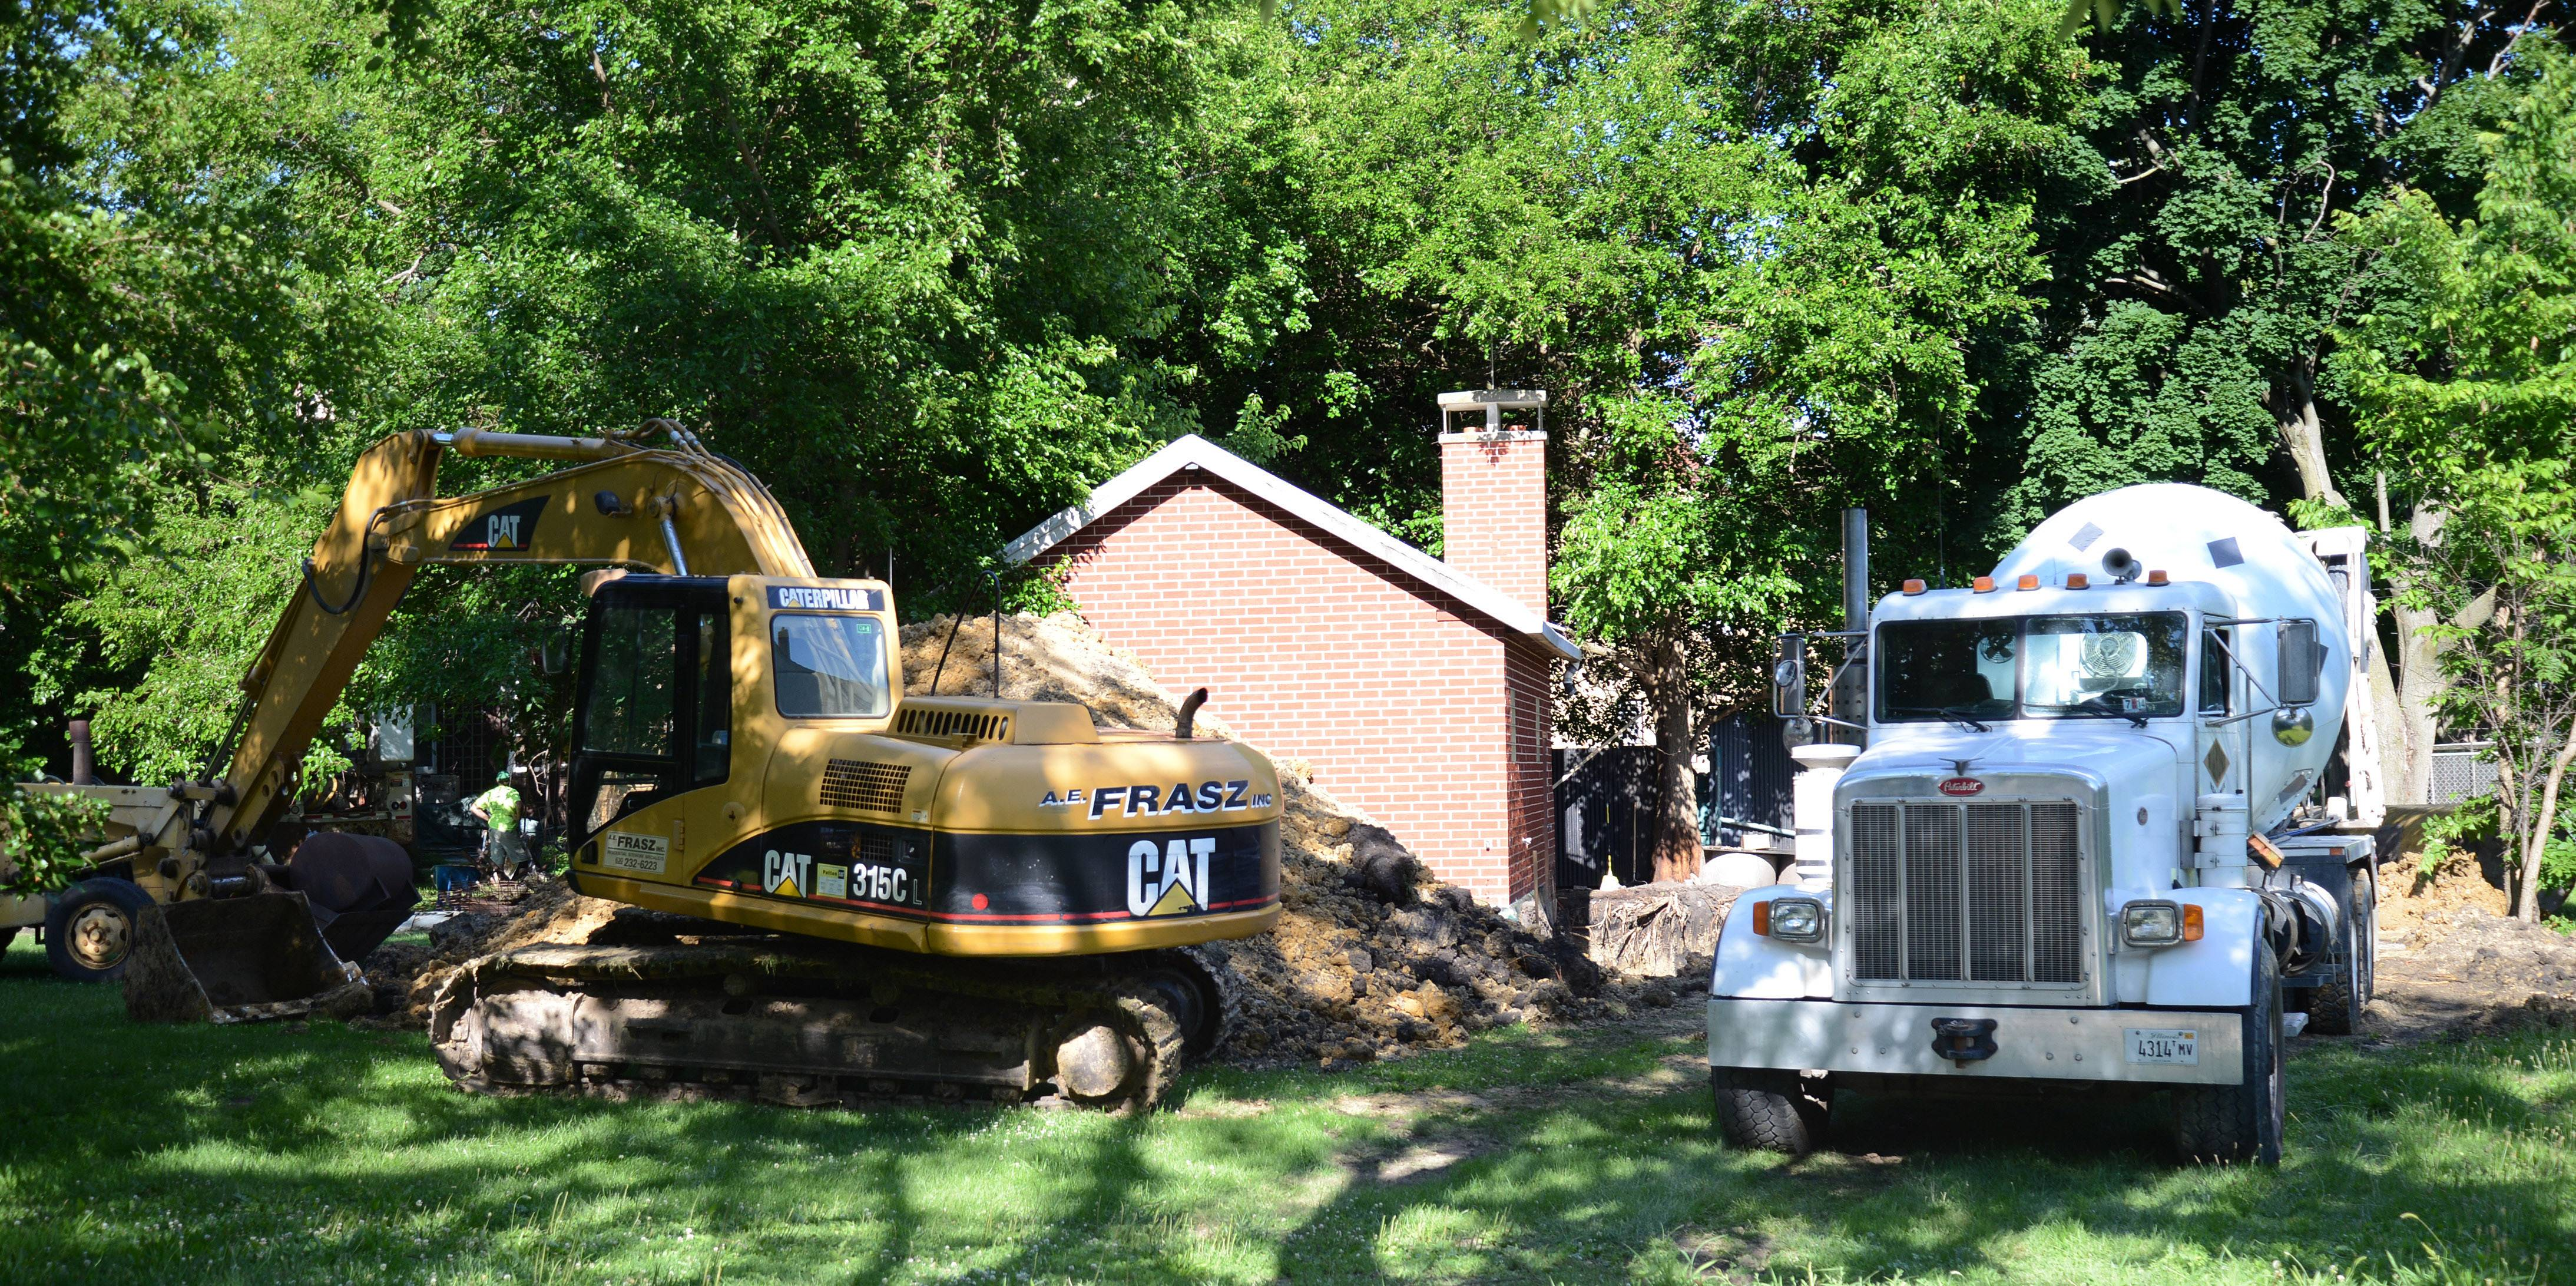 Construction work being done on the property of Cliff McIlvaine is not in complete compliance with an agreement signed with the city of St. Charles, a city attorney says. McIlvaine's attorney disagrees.